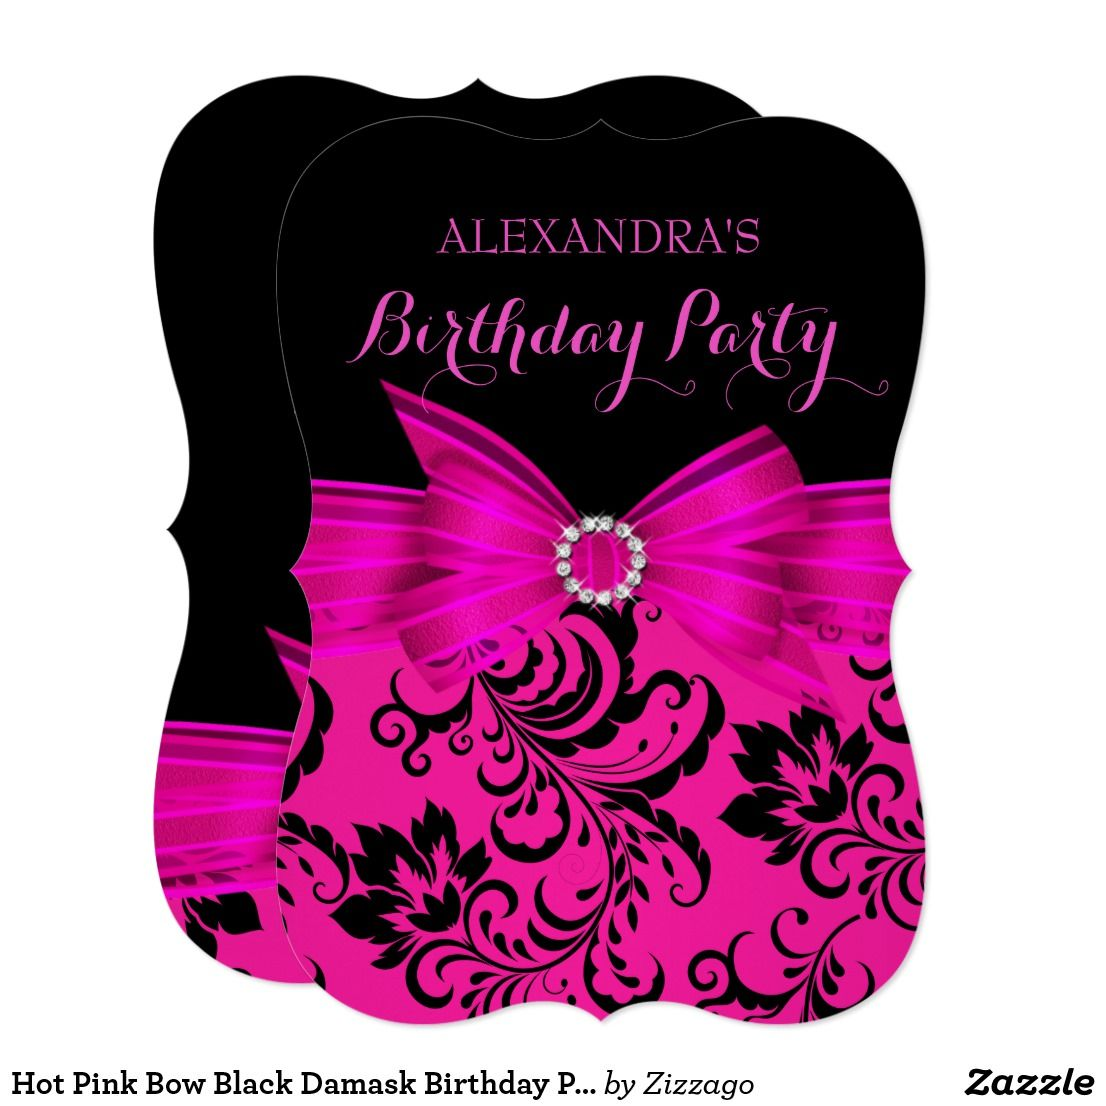 Hot Pink Bow Black Damask Birthday Party Card | Invitations ...